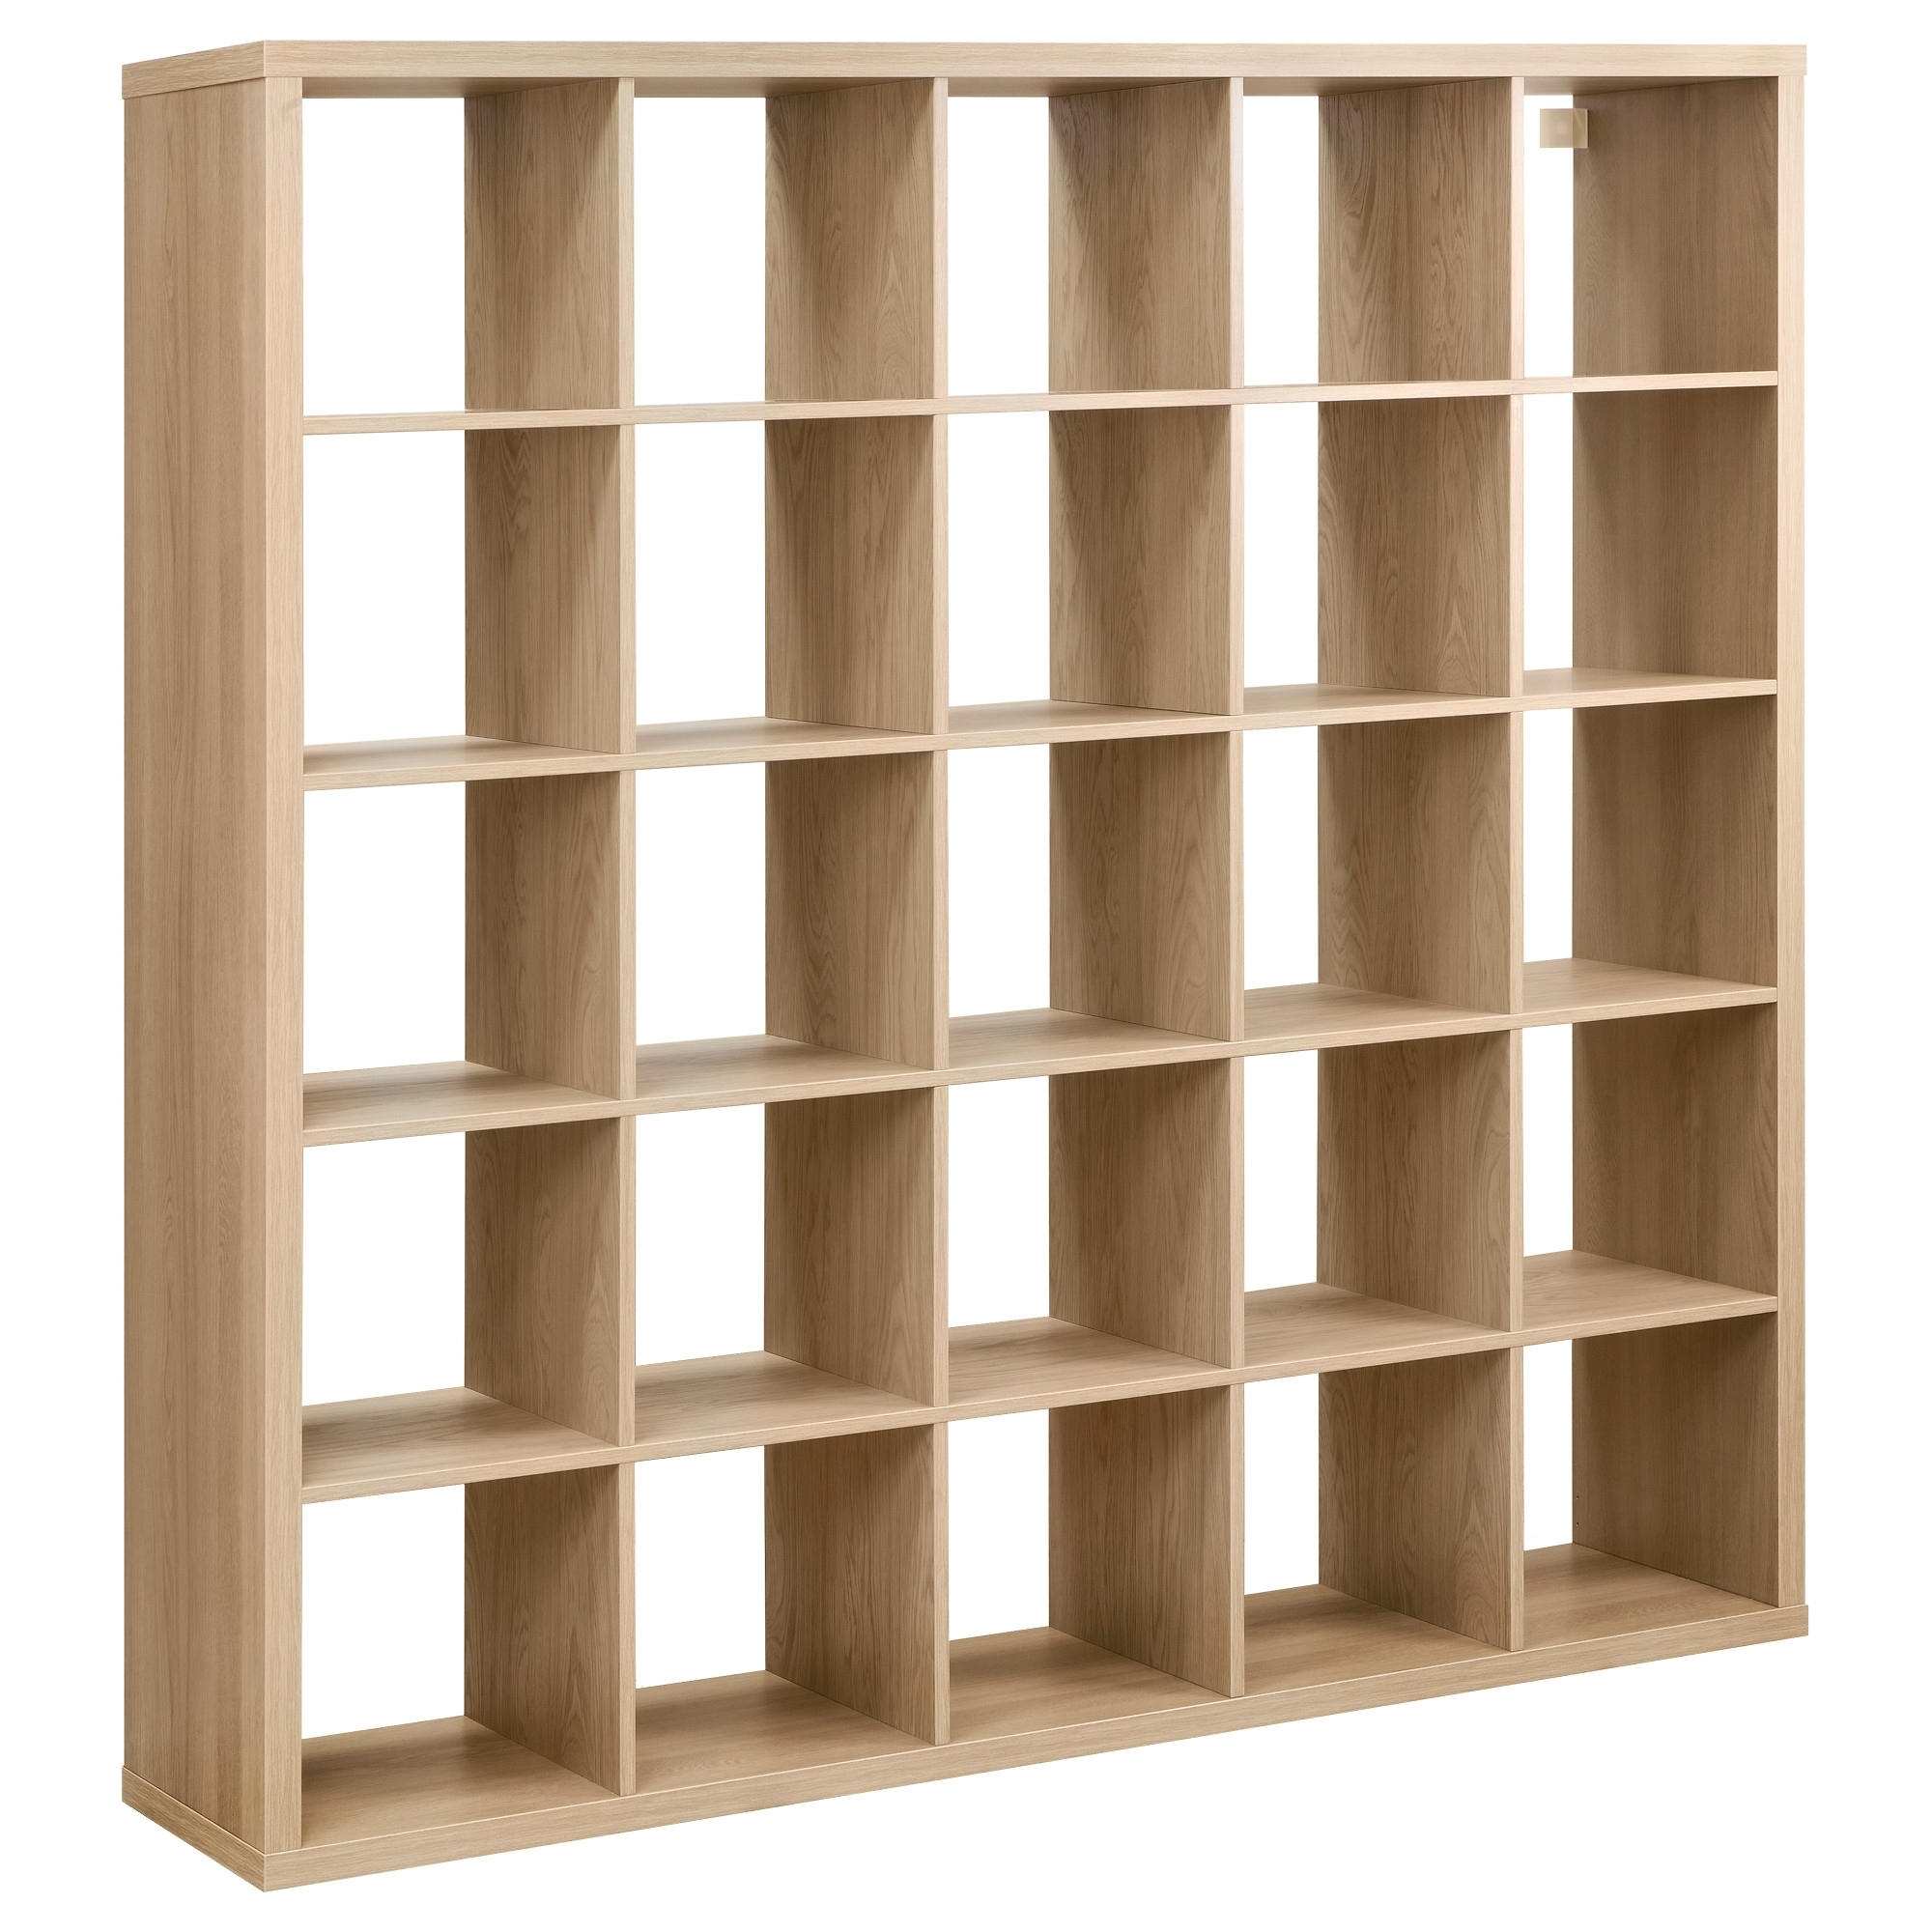 Well Liked Oak Wall Shelving Units Pertaining To Shelving Unit Shelves Argos Full Hd Wallpaper Photos Captivating (View 7 of 15)